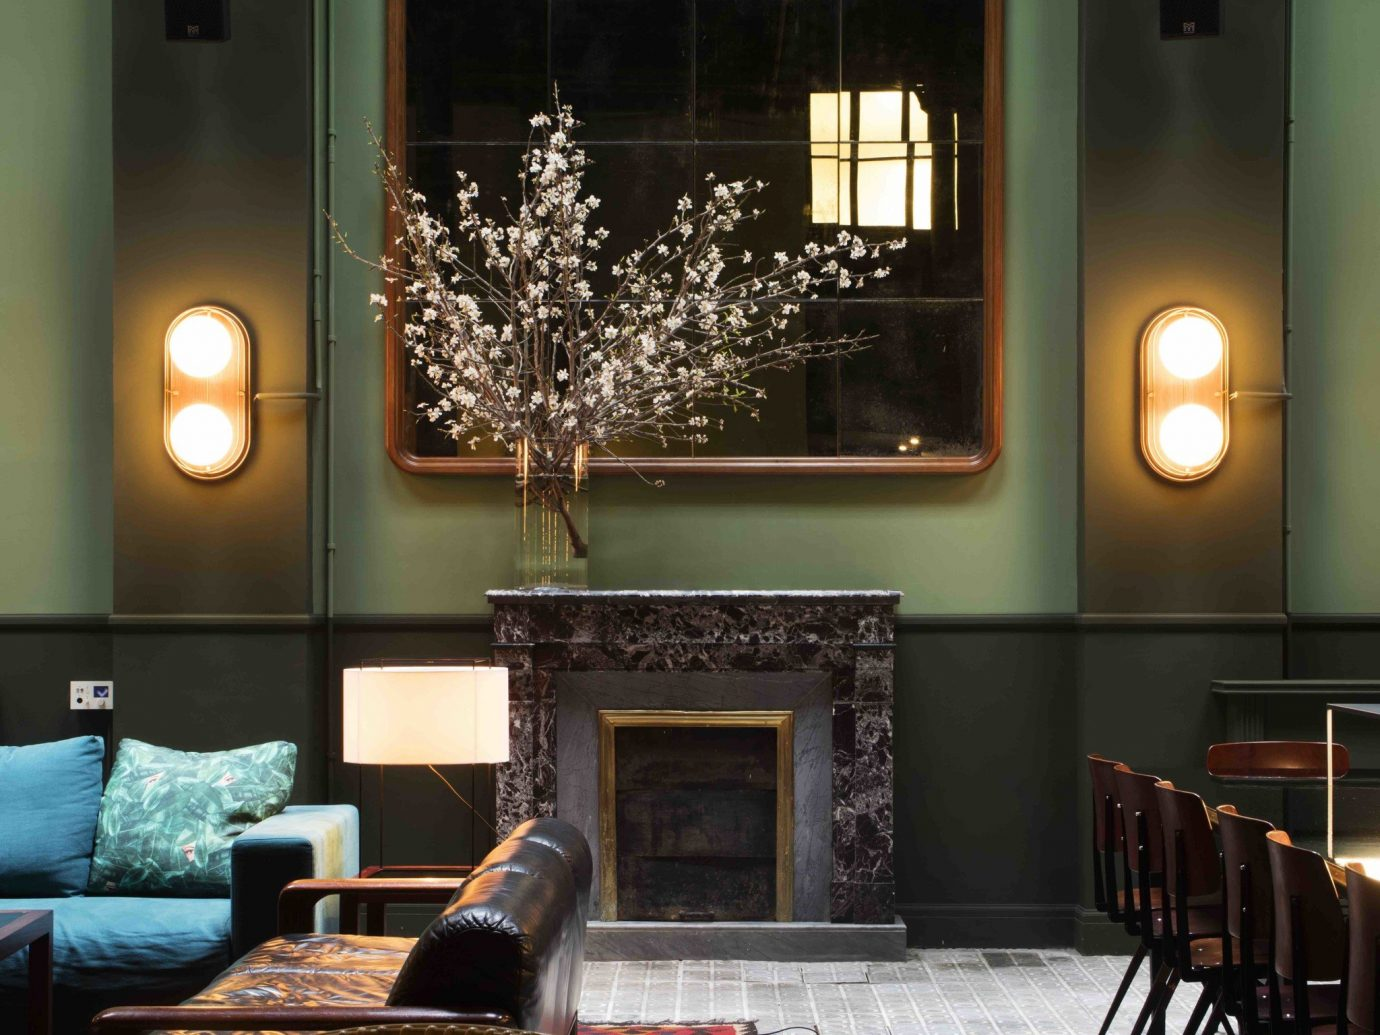 Hotels indoor wall floor room chair dining room living room interior design lighting home Lobby estate Design ceiling window covering furniture decorated